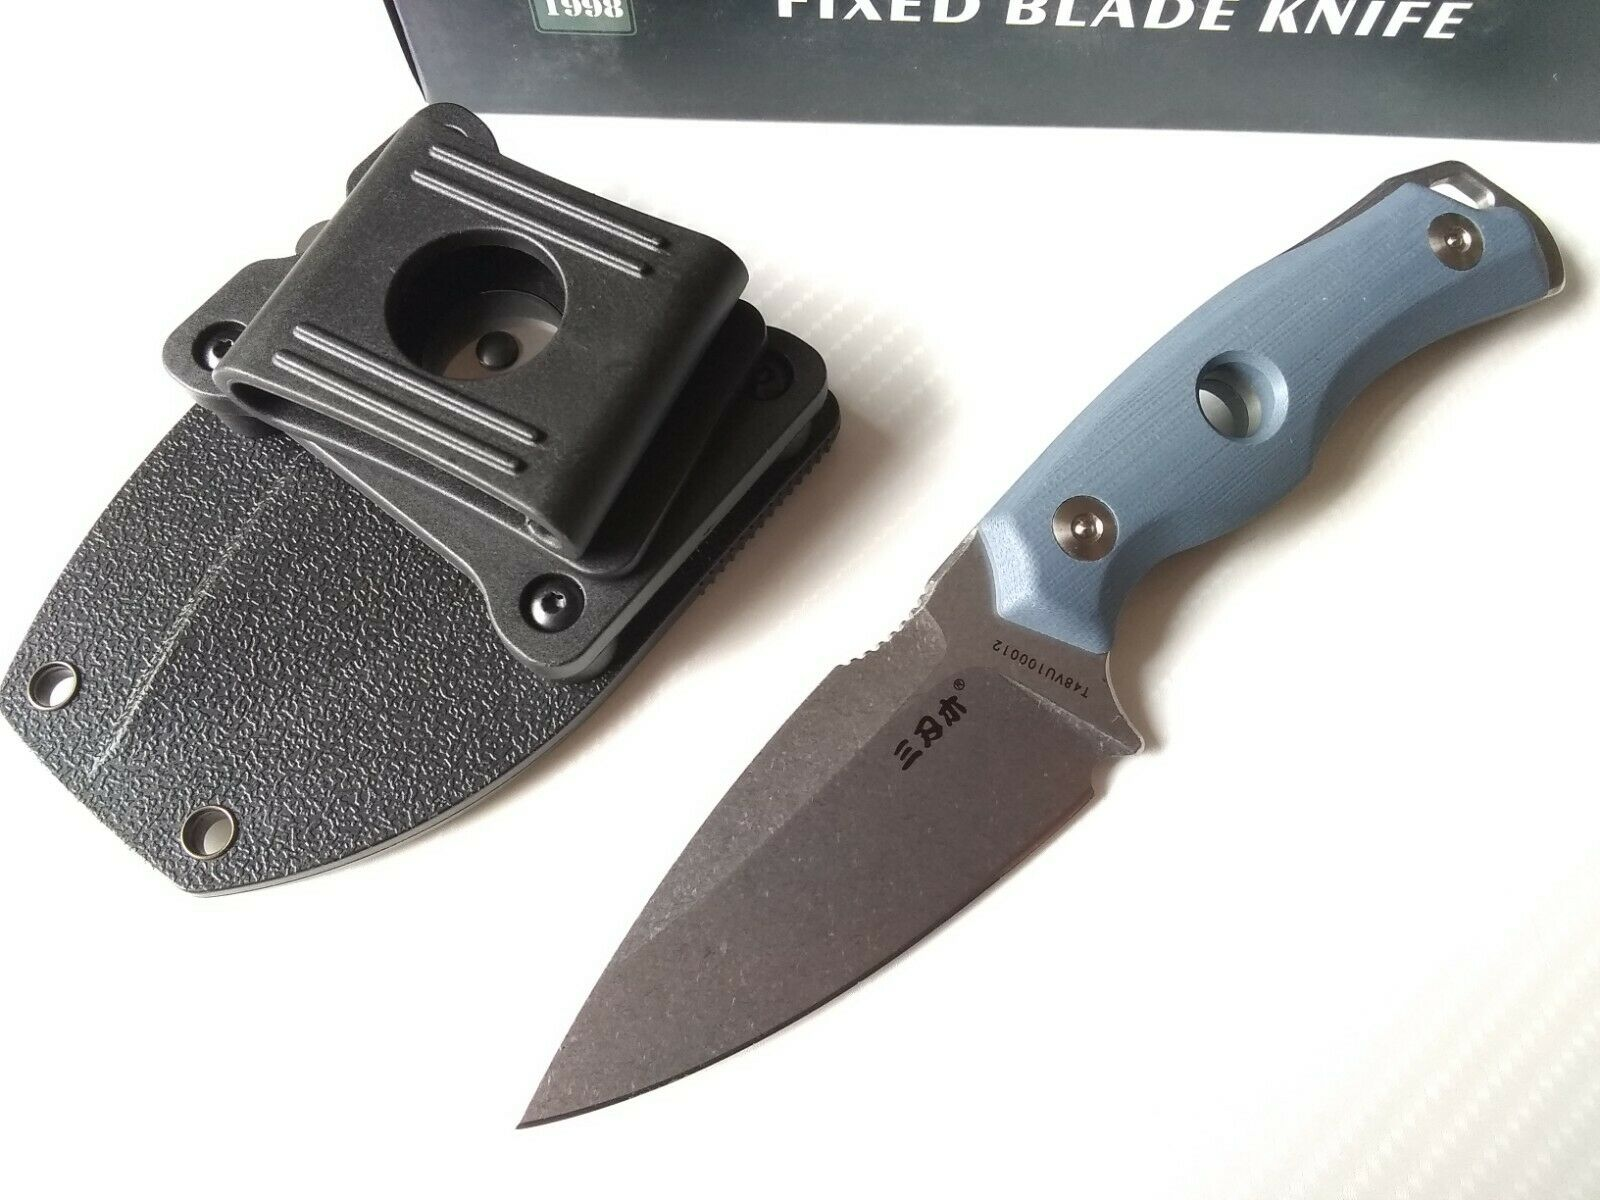 Sanrenmu S625 Blue G10 EDC Fixed Blade Knife Horizontal / Angled / Vertical Mount Concealed Carry 8Cr14MoV